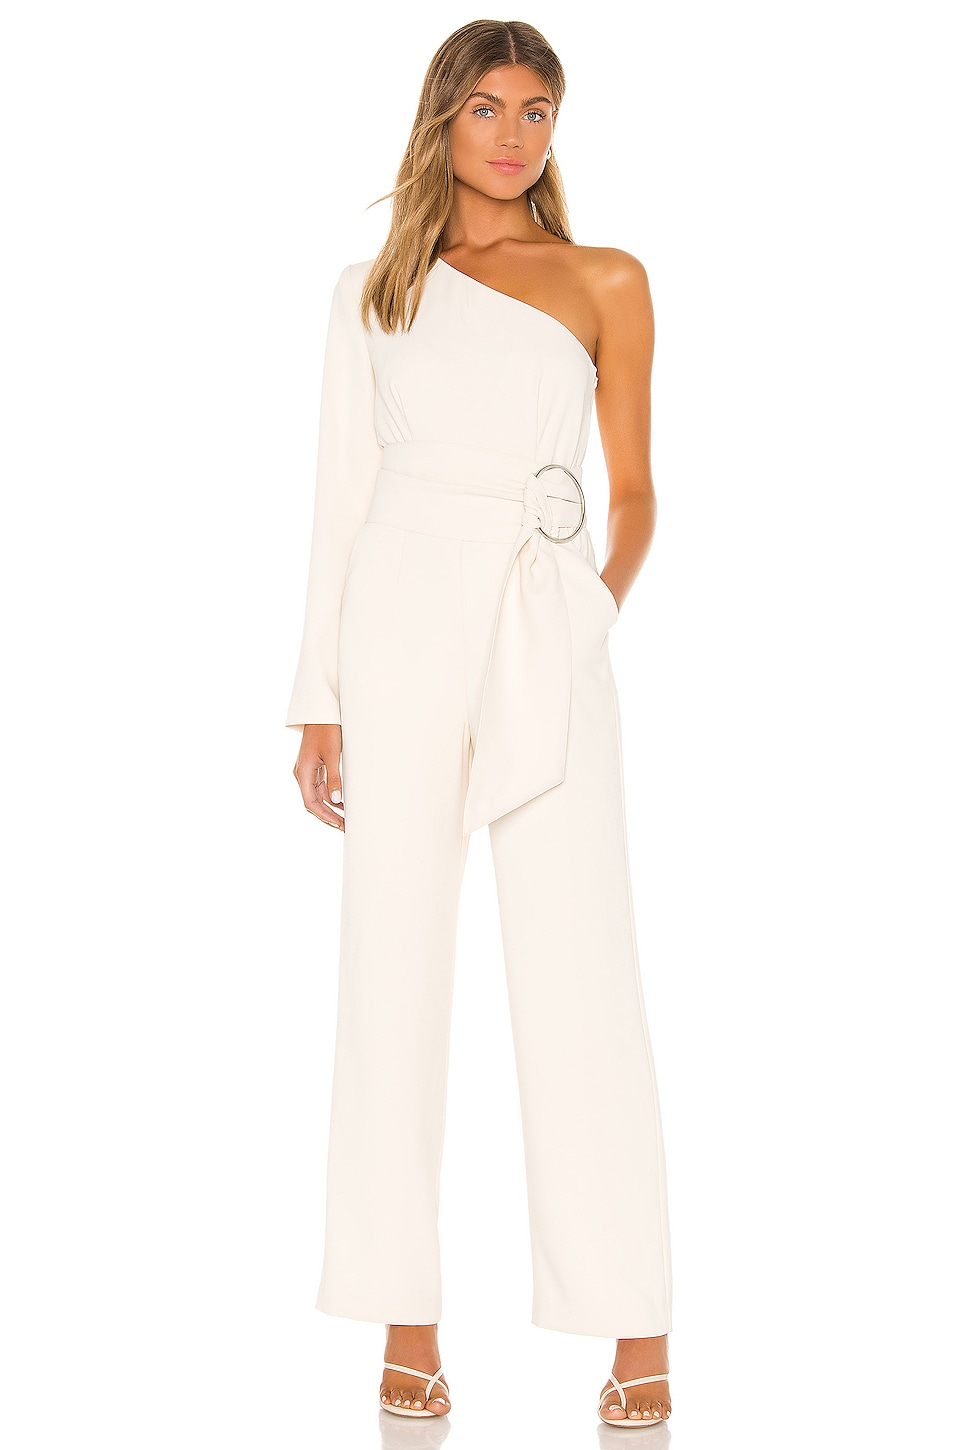 L'Academie The Emmanuelle Jumpsuit in Ivory